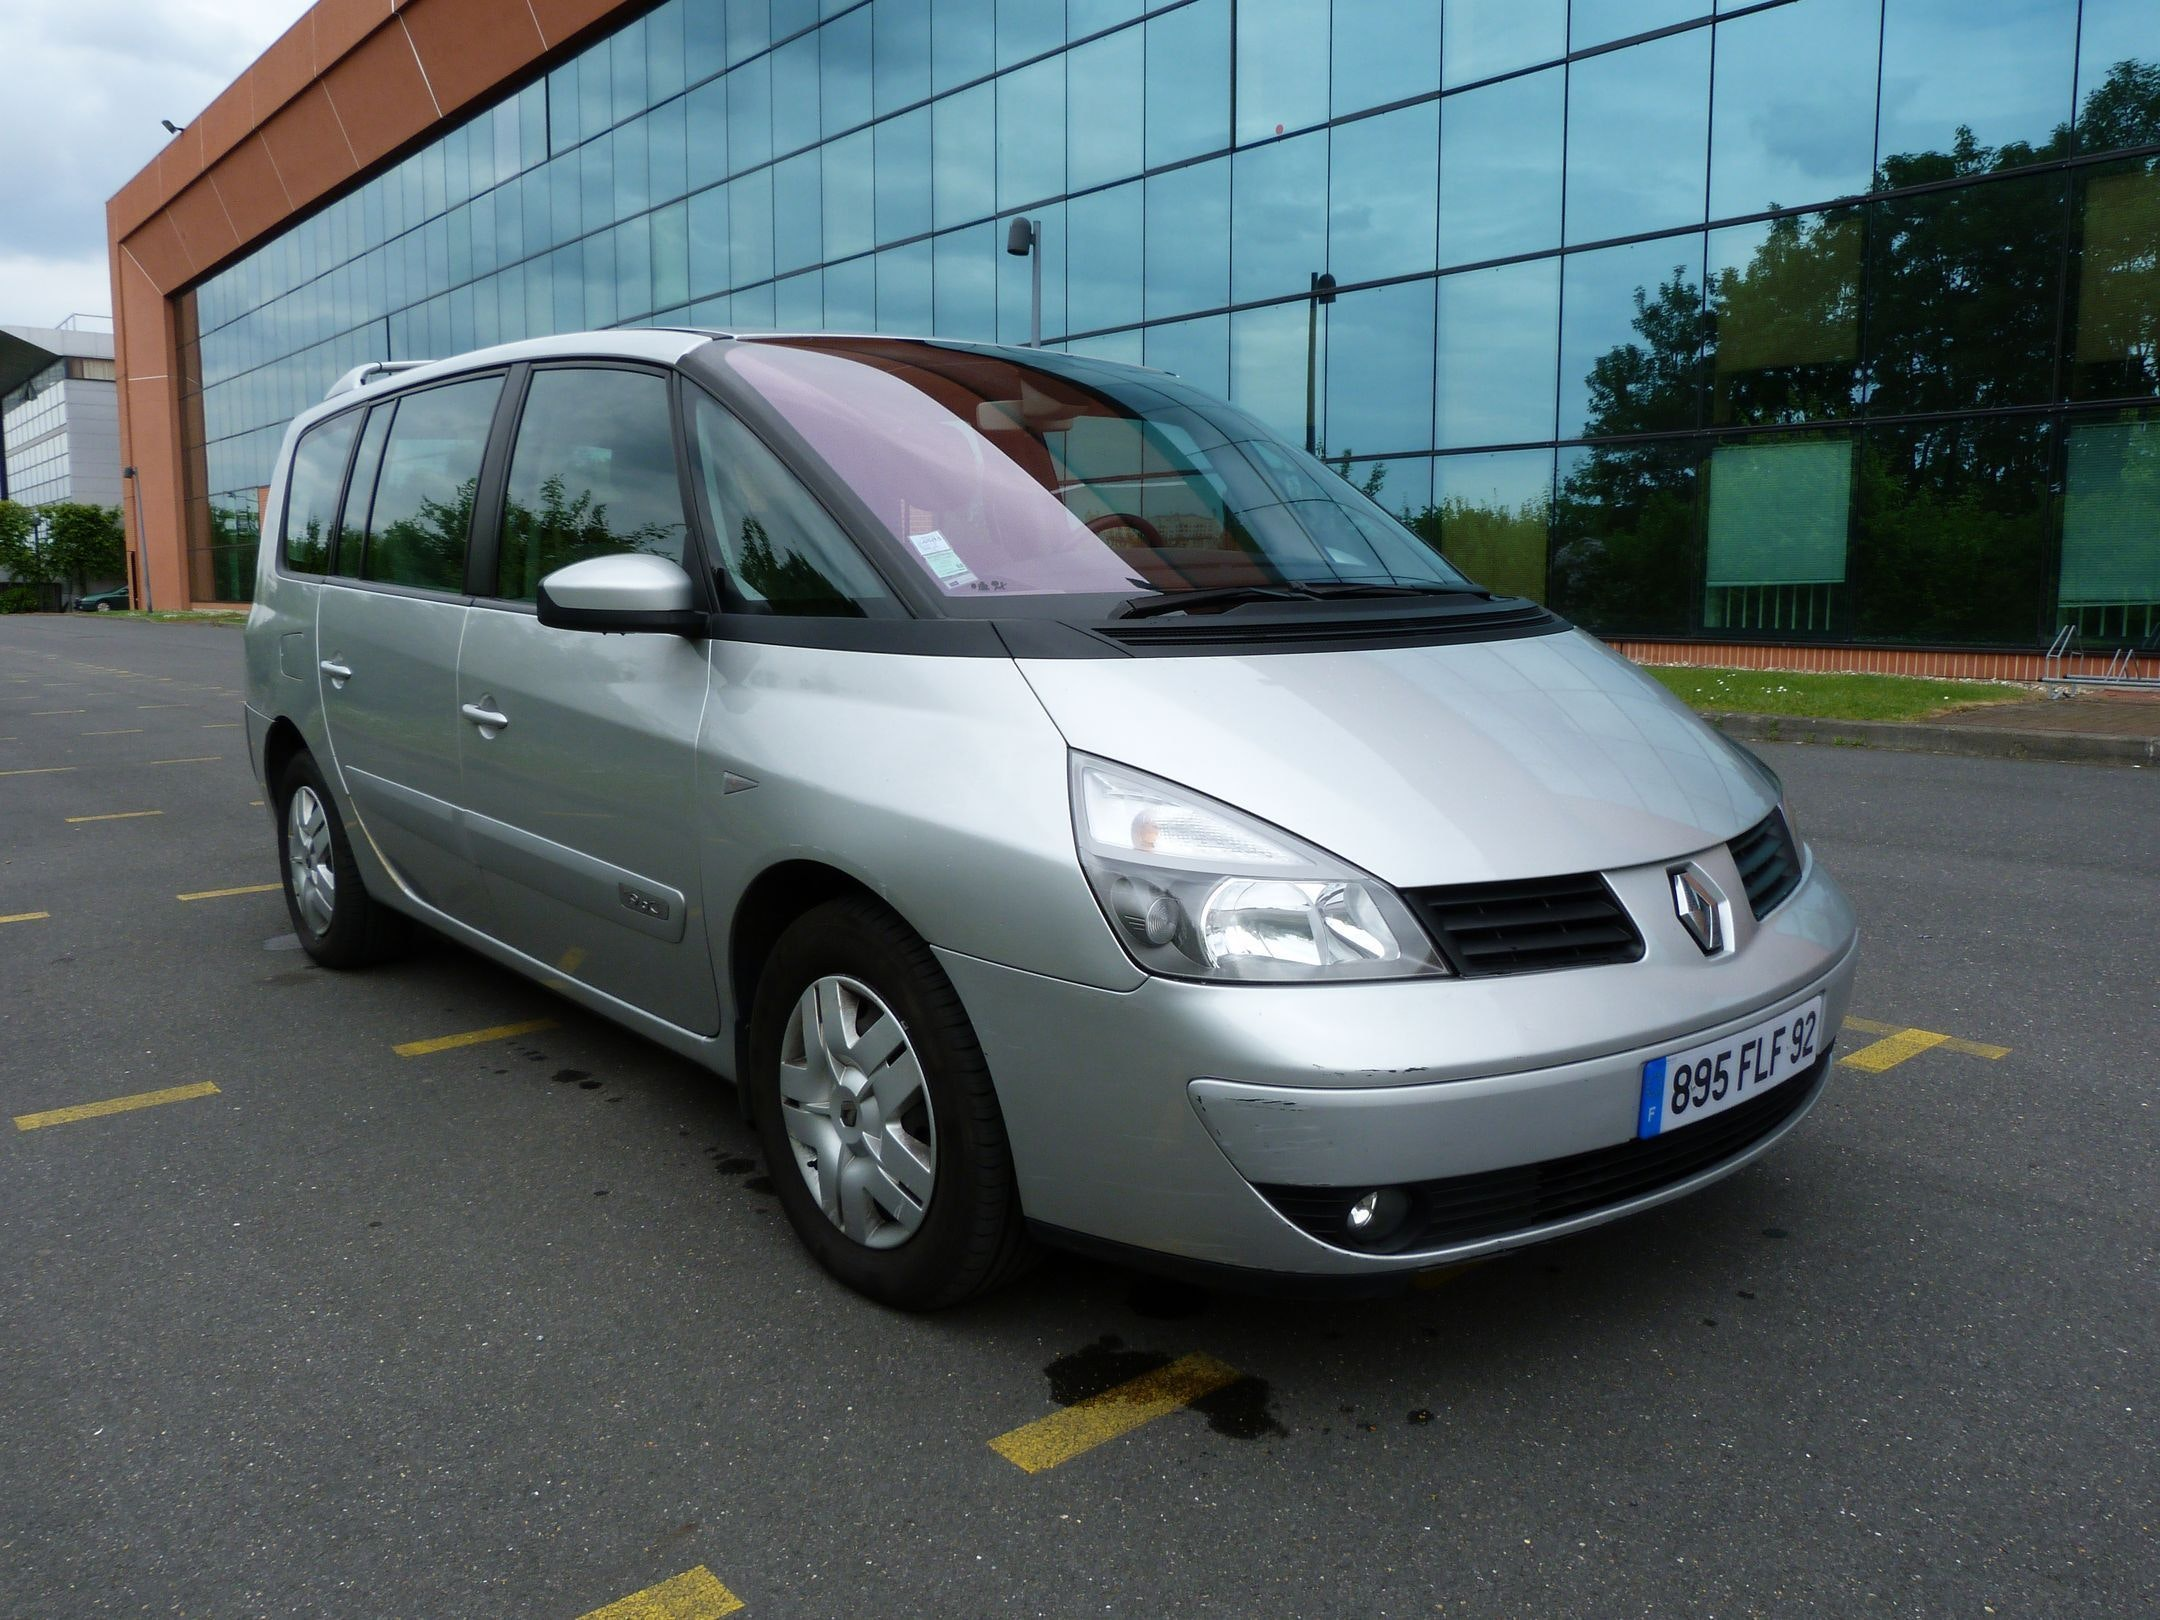 Renault Grand Espace IV 1.9 DCI EXPRESSION, 2005, Diesel, 7 places